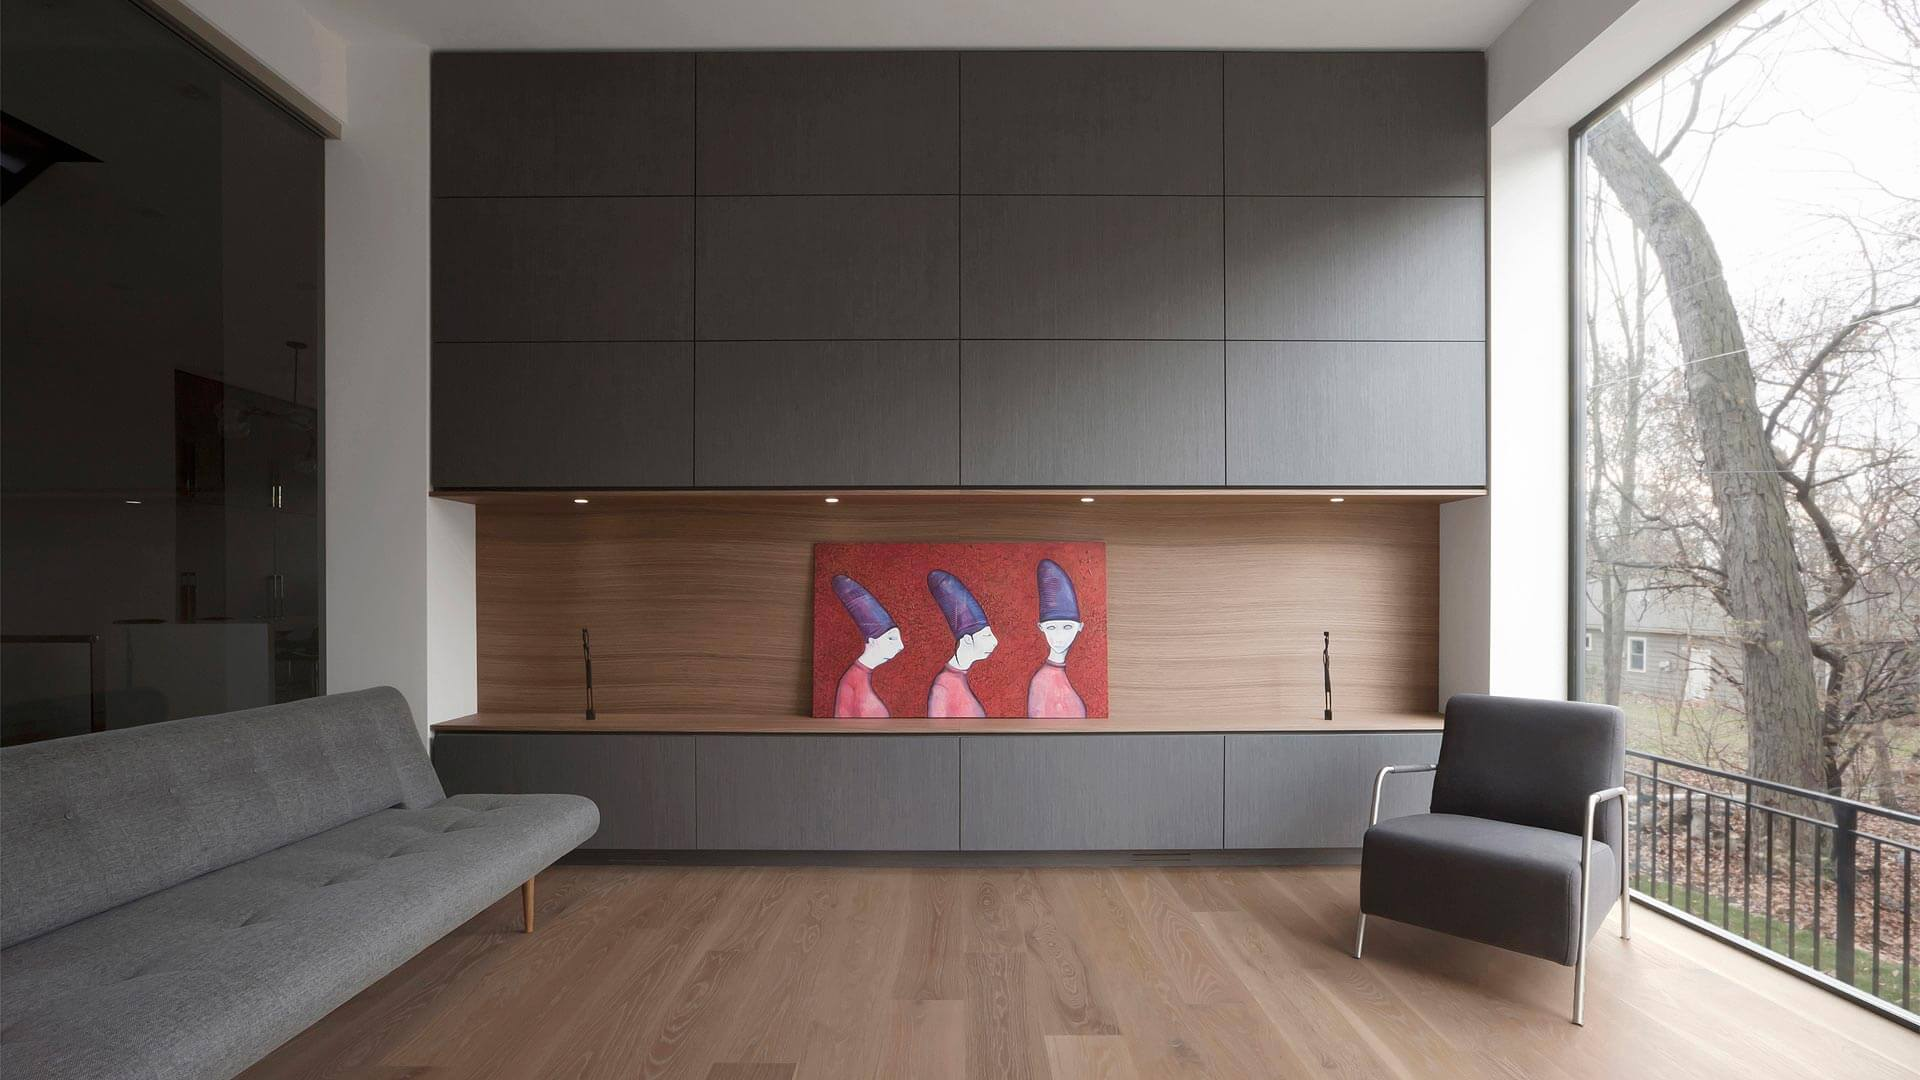 Playroom bordered by millwork storage wall and glazing inside and out - Fleetwood Windows - Minimalist Modern - Indian Head Park - Chicago, Illinois - HAUS   Architecture For Modern Lifestyles, Christopher Short, Indianapolis Architect with Joe Trojanowski